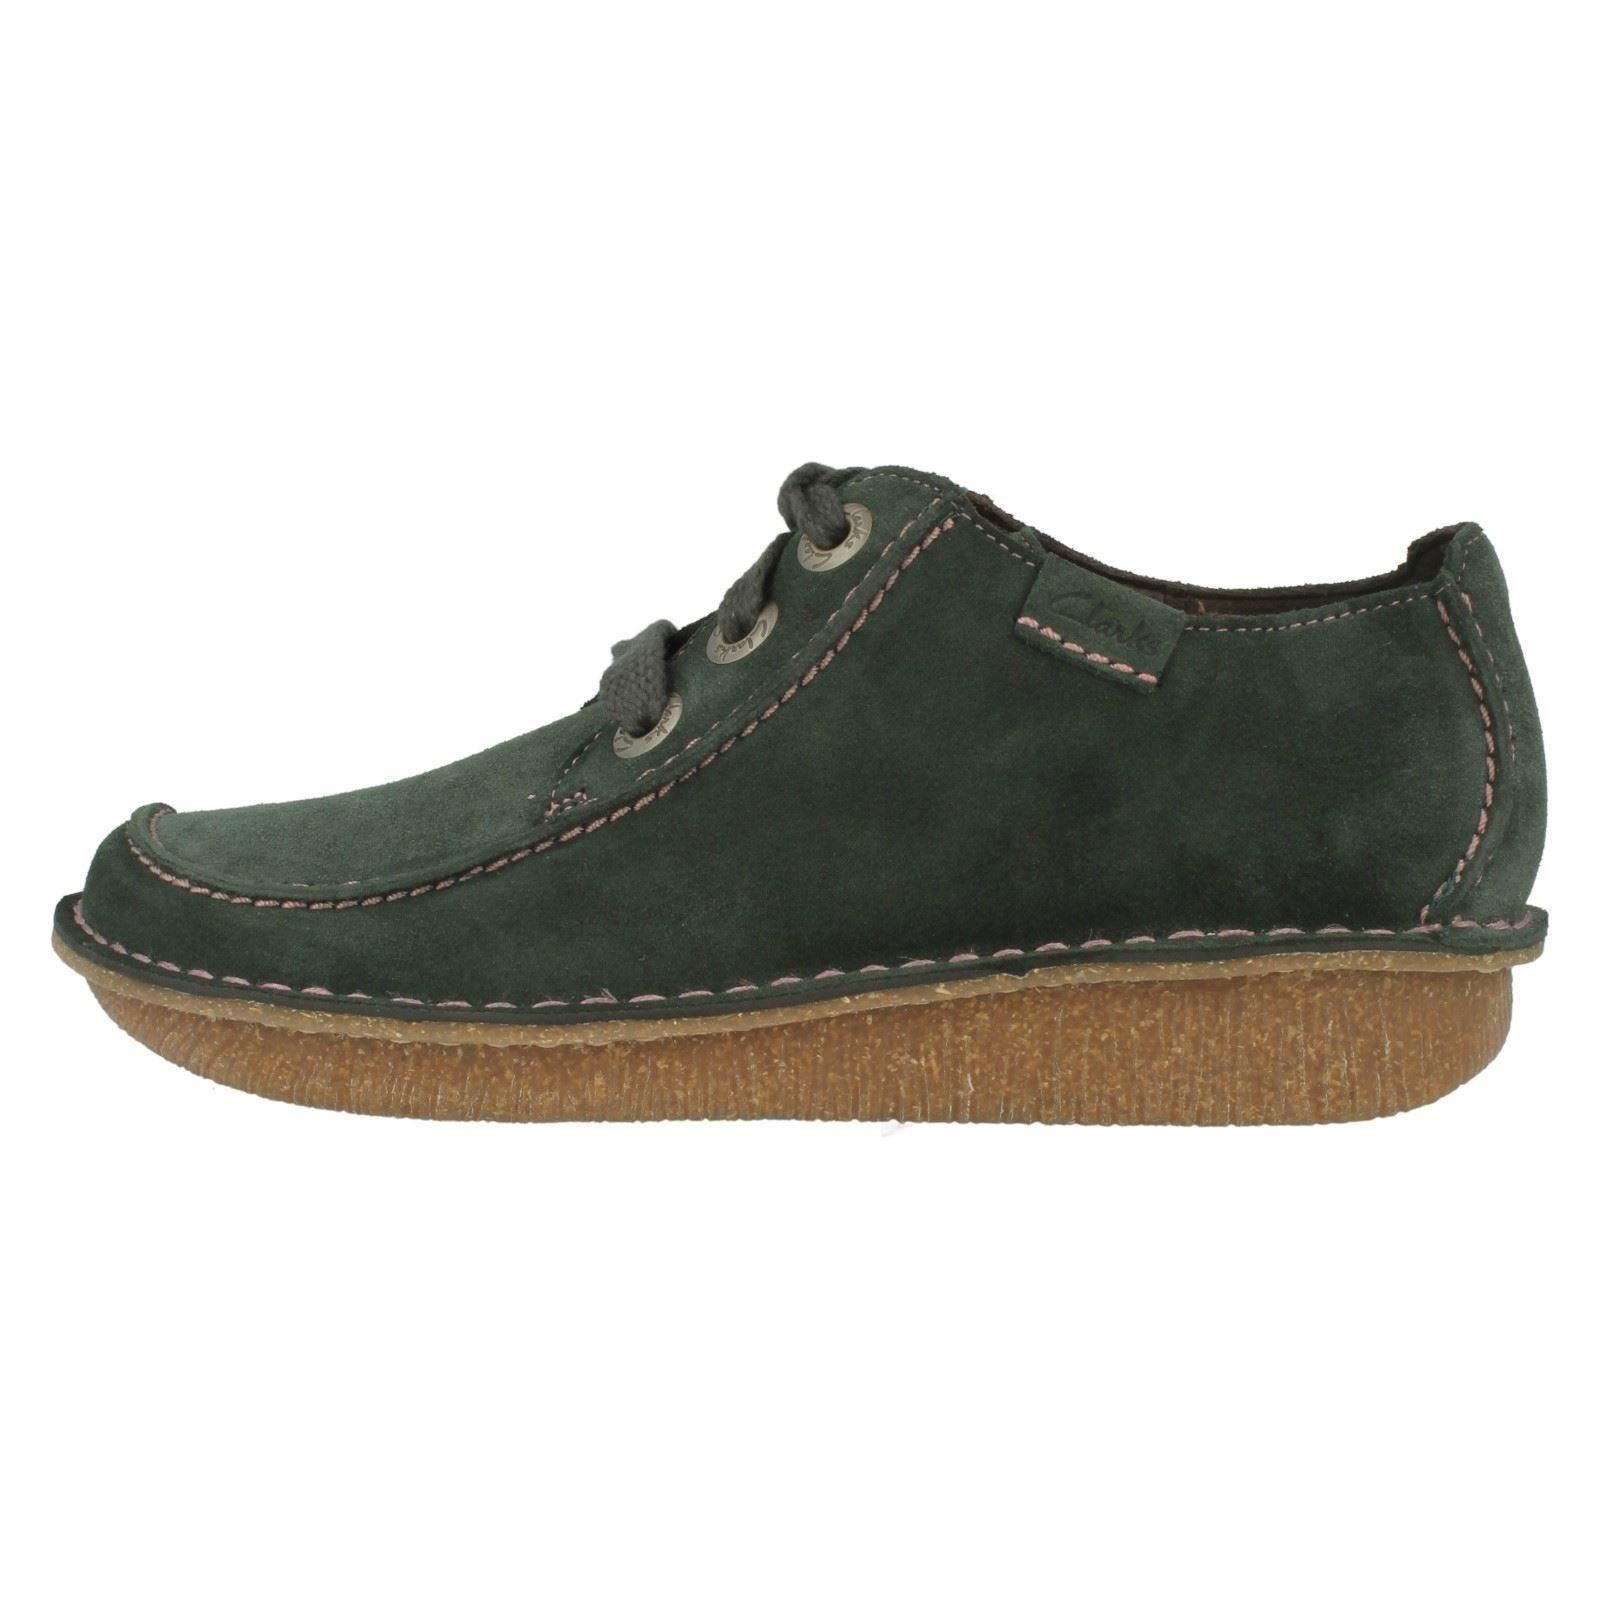 Ladies Clarks Leather Lace Up Shoes